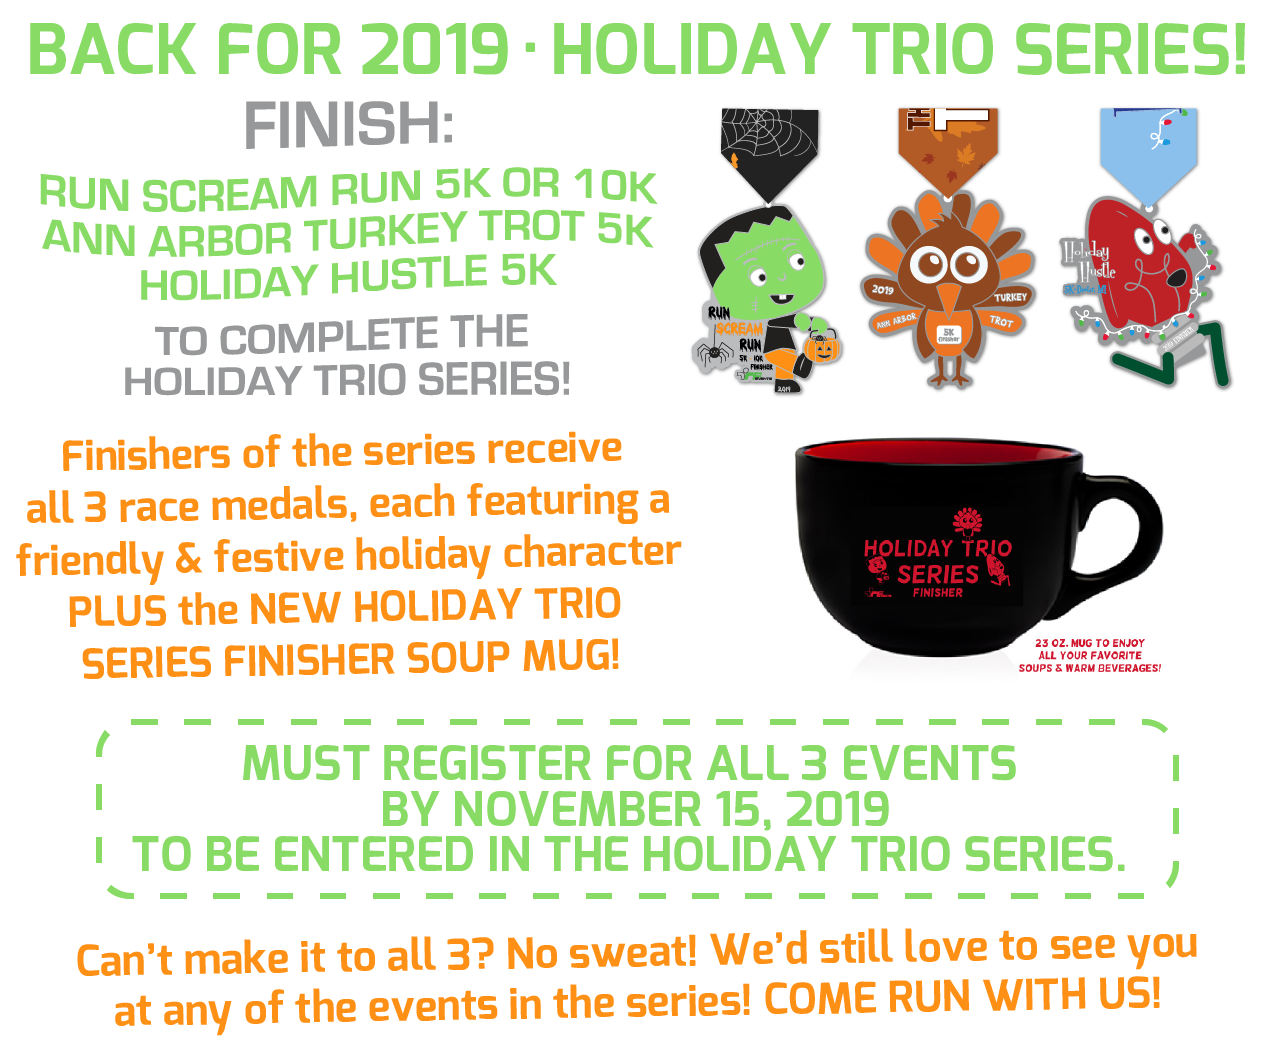 HolidayTrio forweb 01